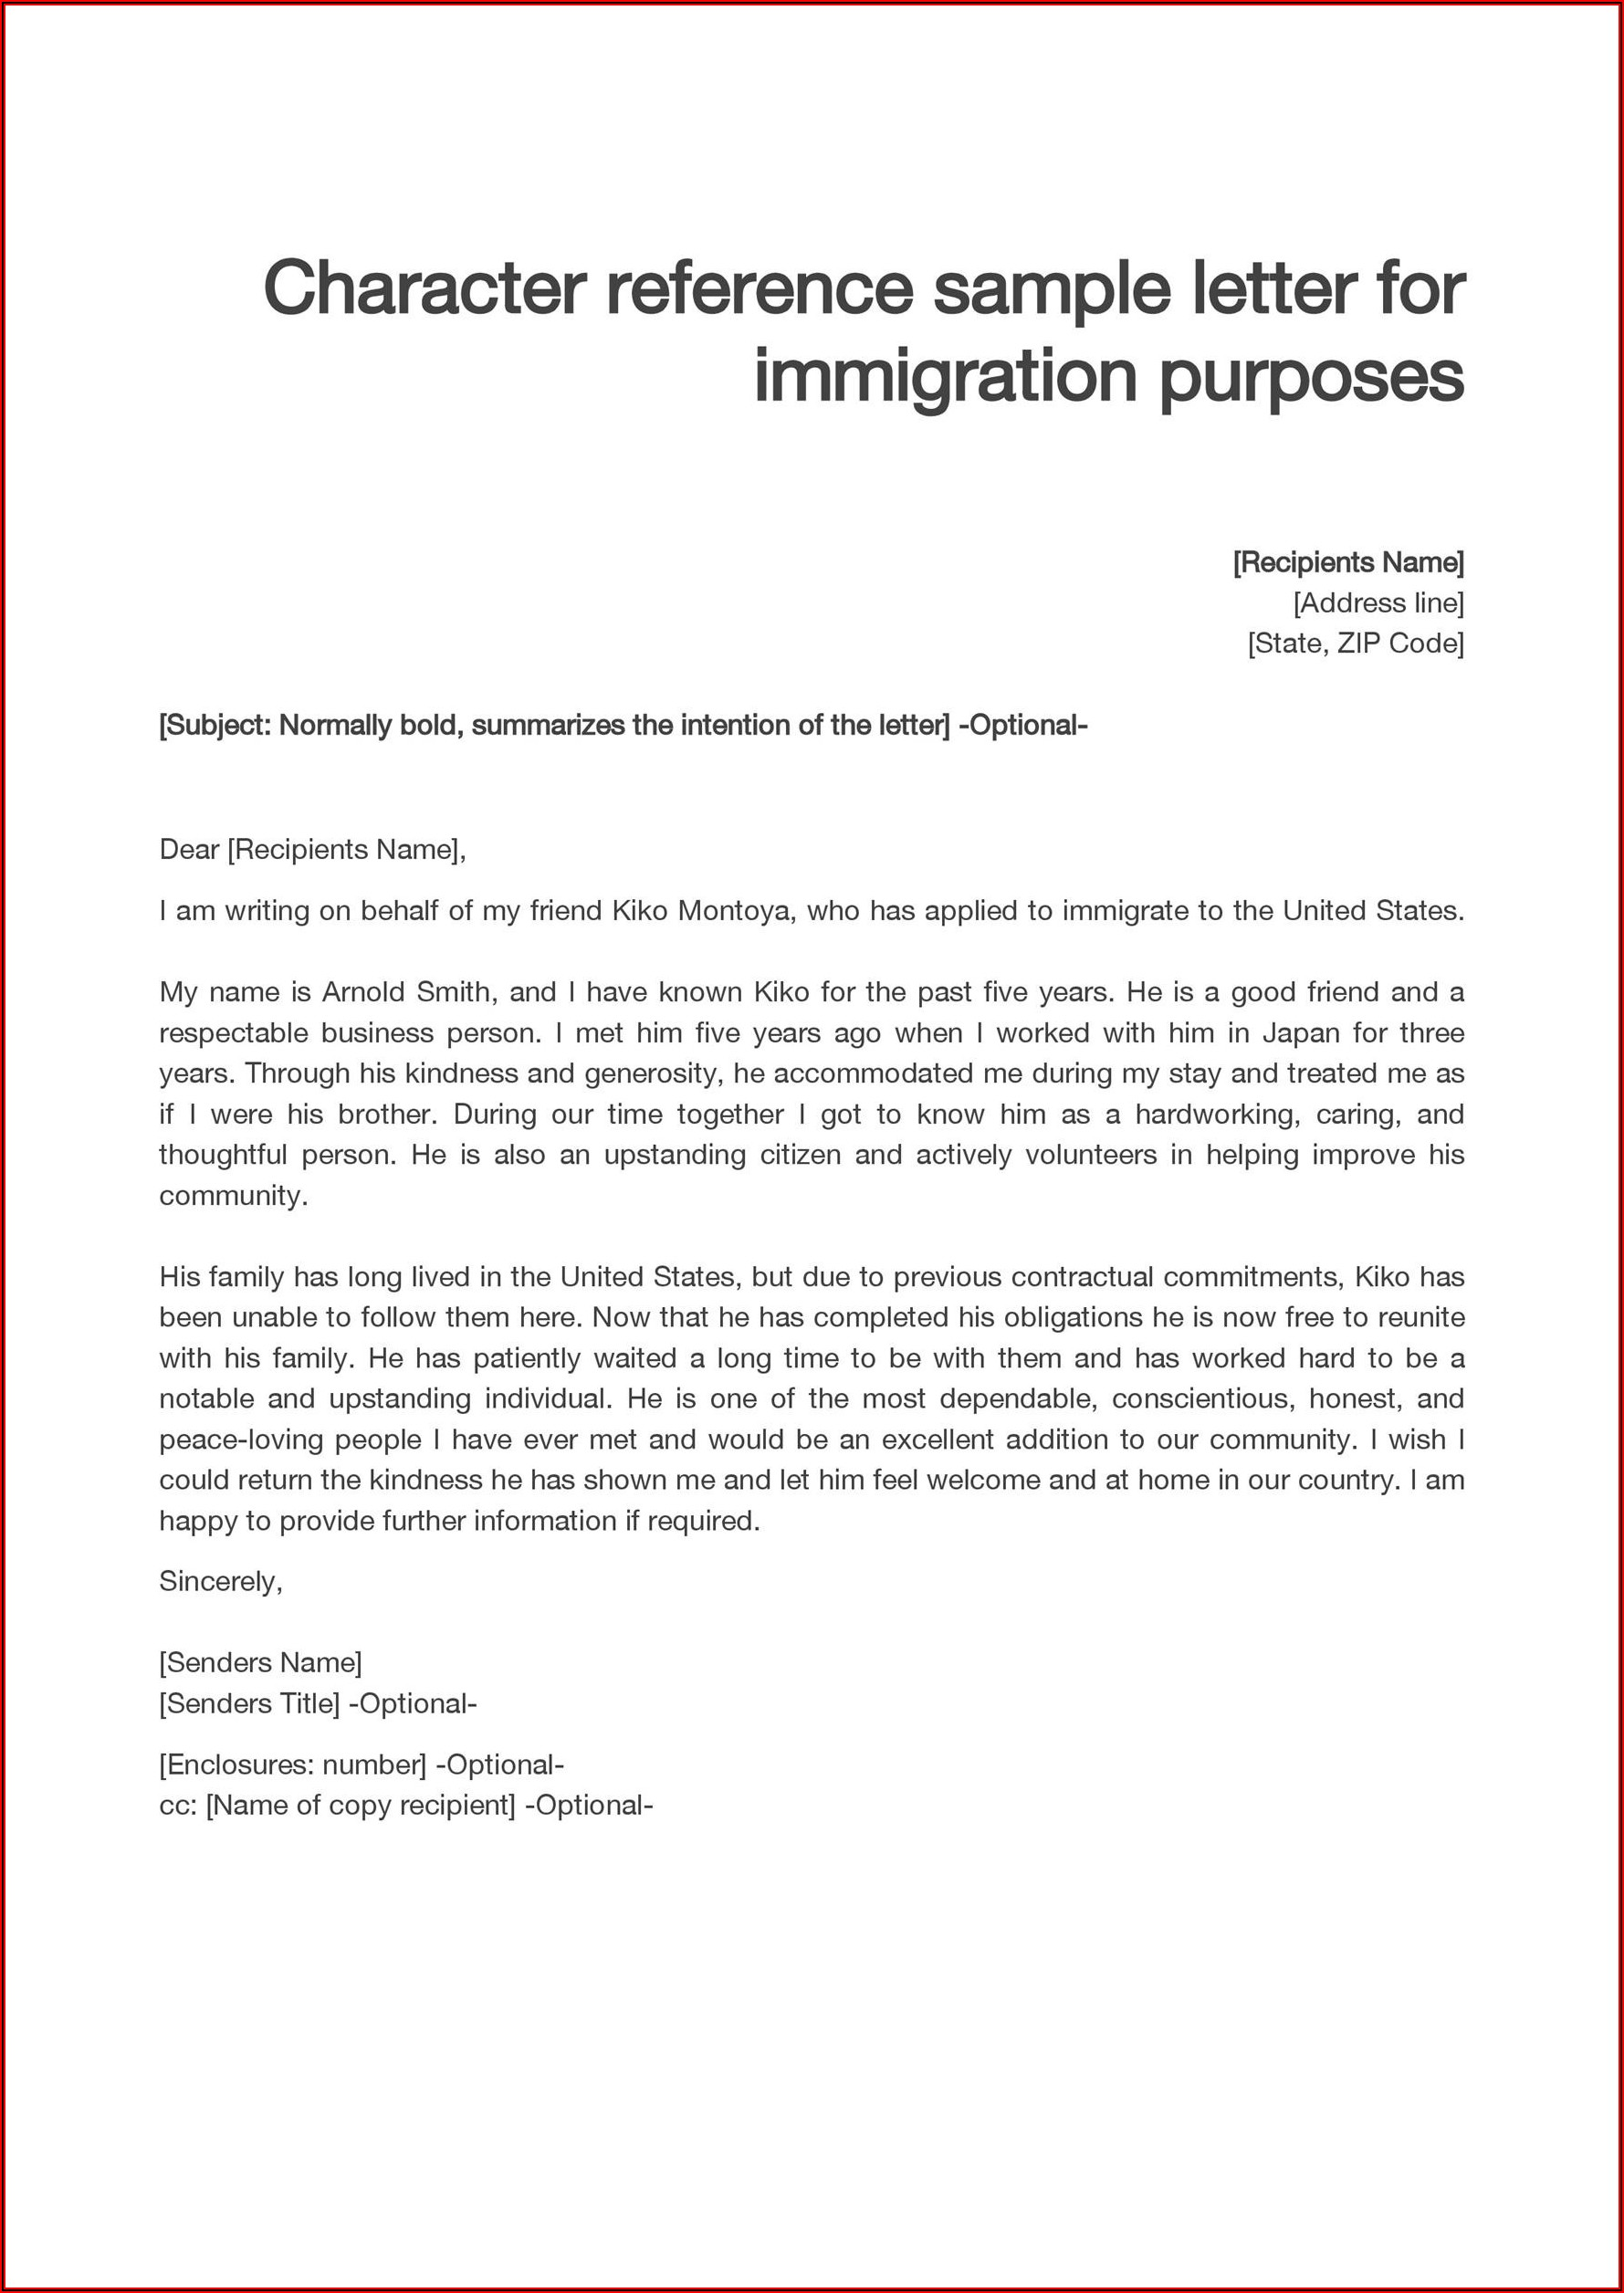 Sample Personal Reference Letter For Immigration Purposes